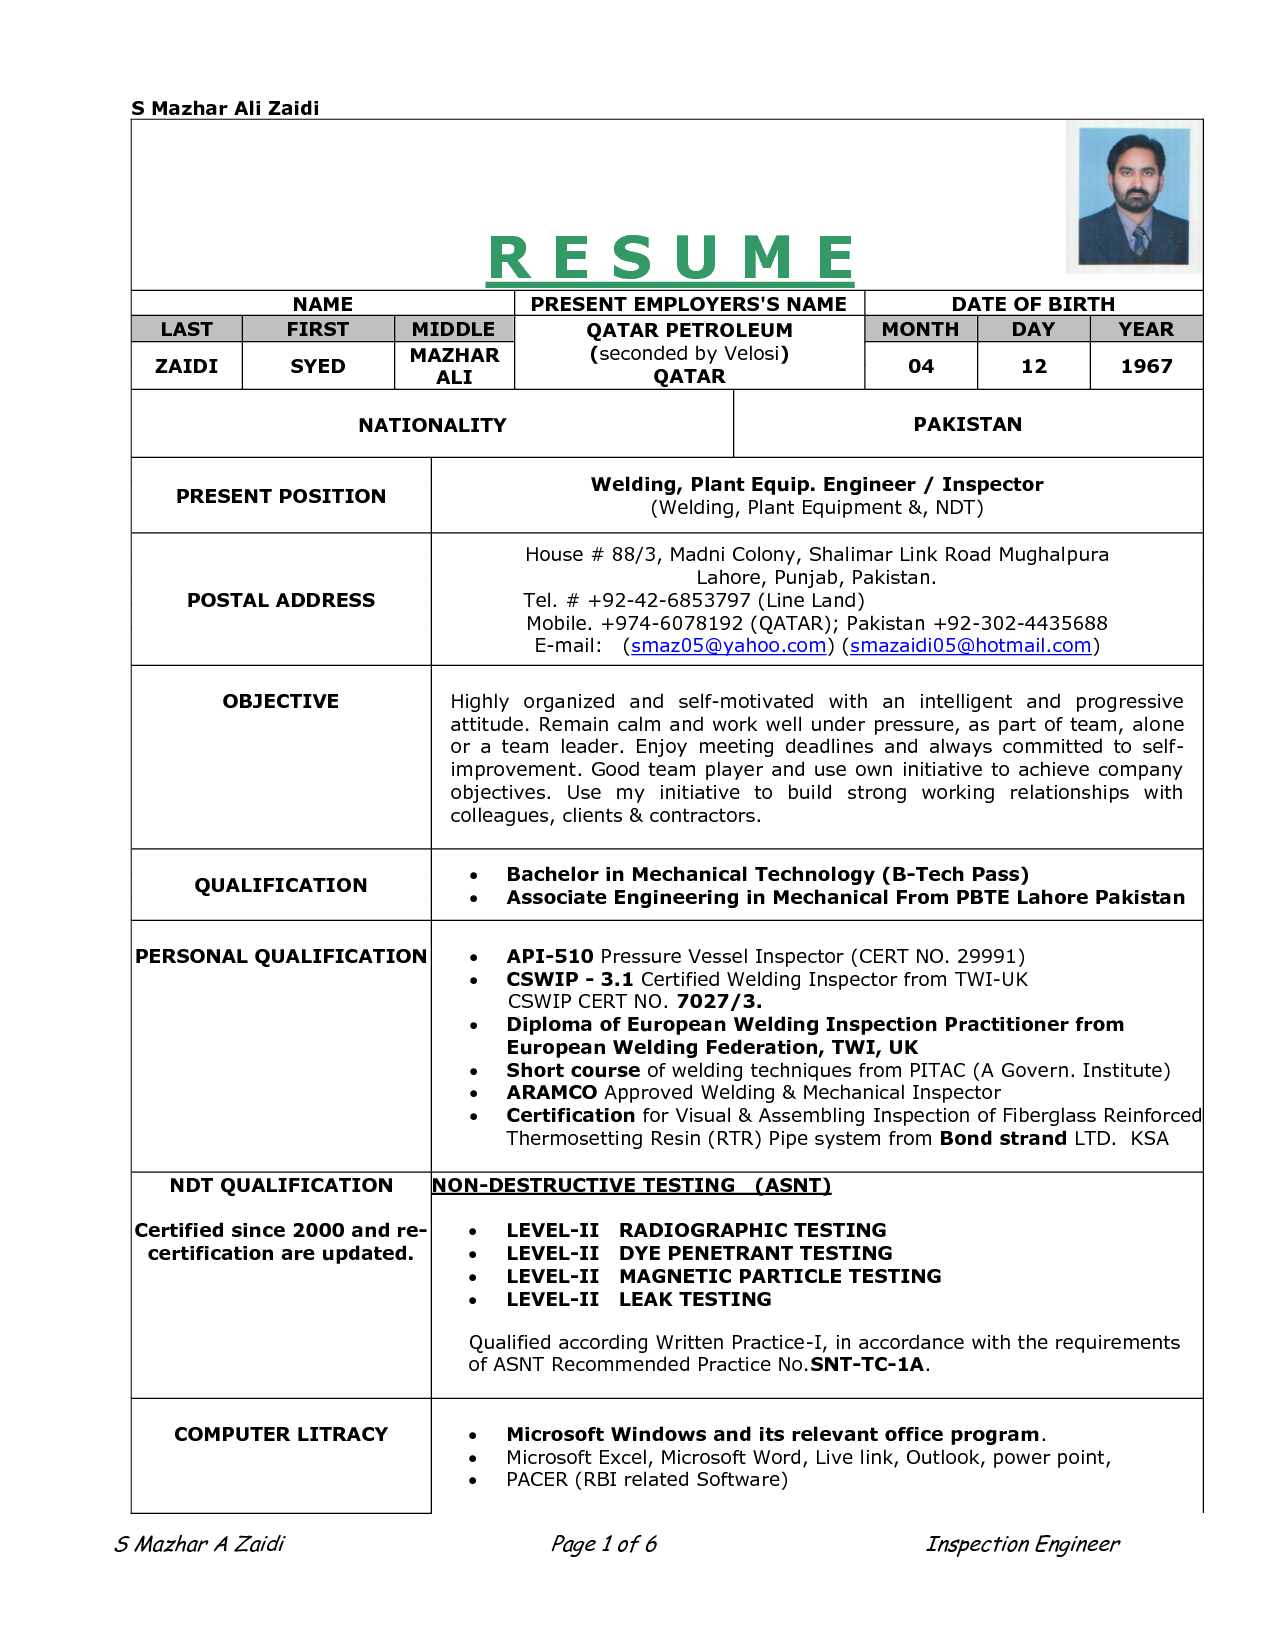 re work procedure resumedoc download legal documents re work procedure resume document sample - Sample Resume Doc